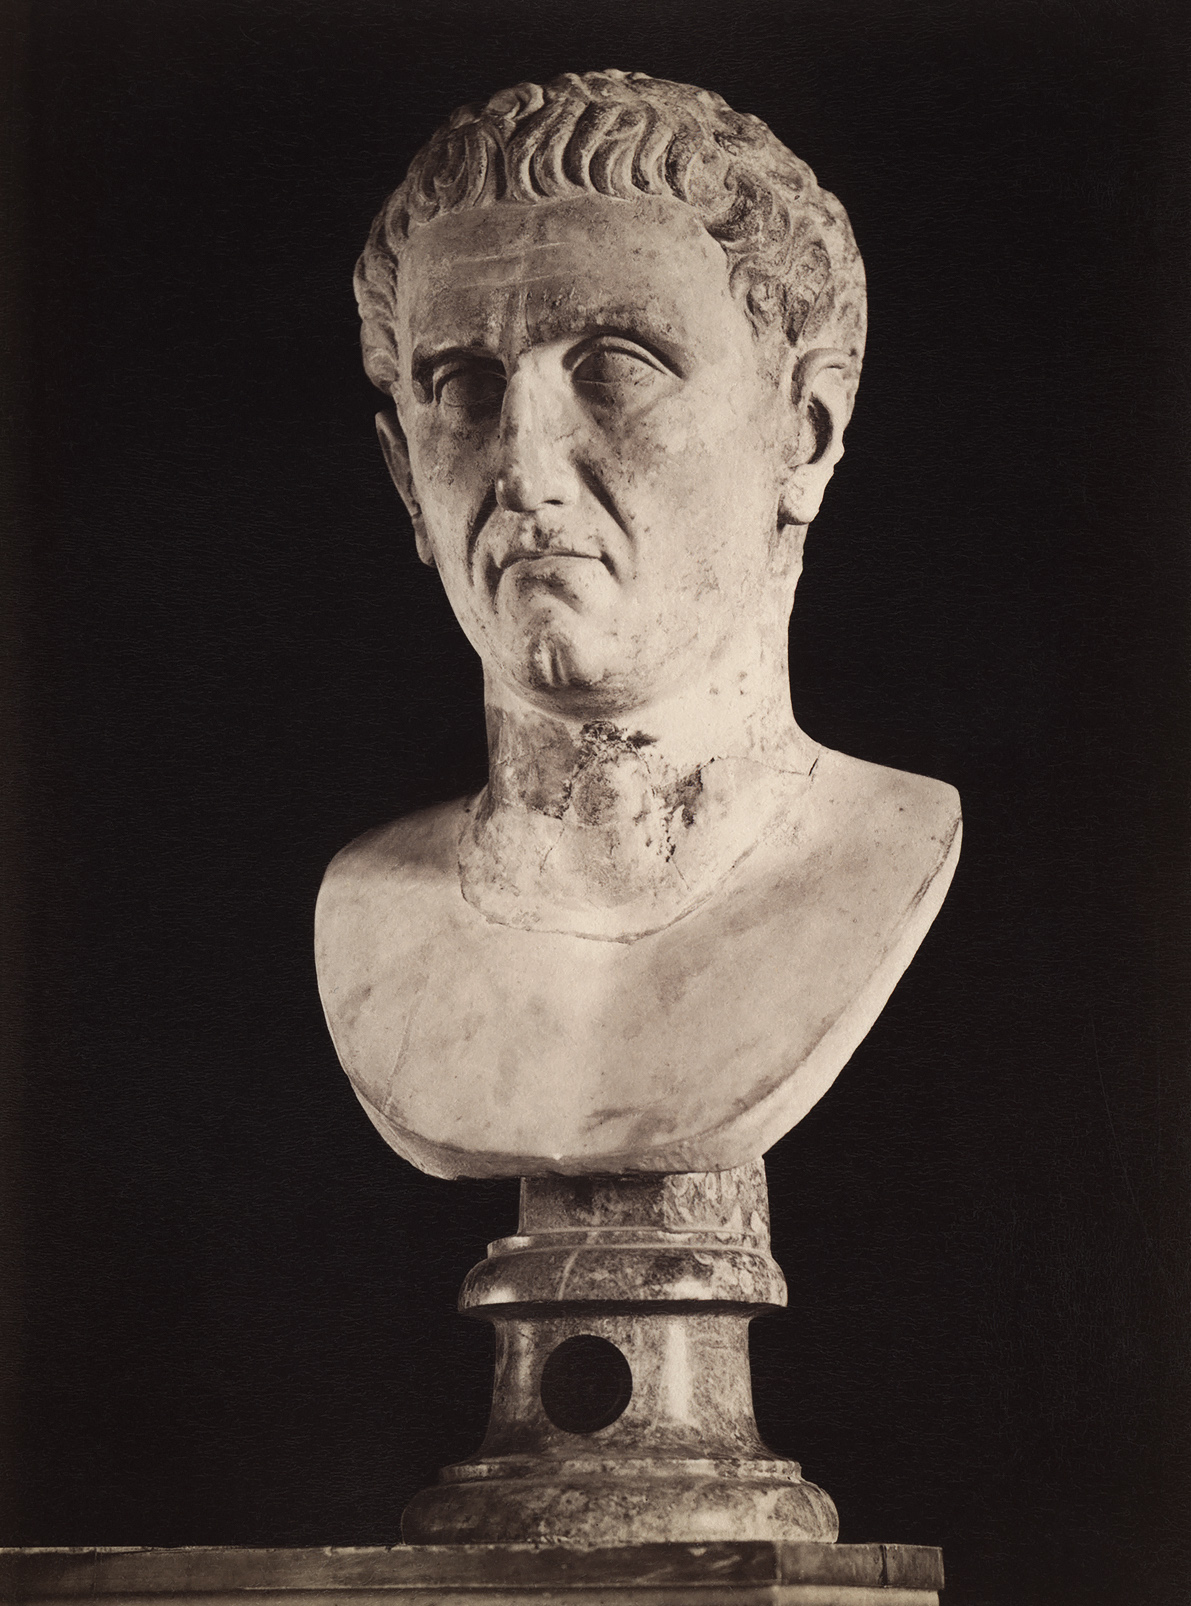 Drusus the Elder, the brother of Tiberius. Marble. 1st century. Rome, Capitoline Museums, Palazzo Nuovo, Hall of the Emperors